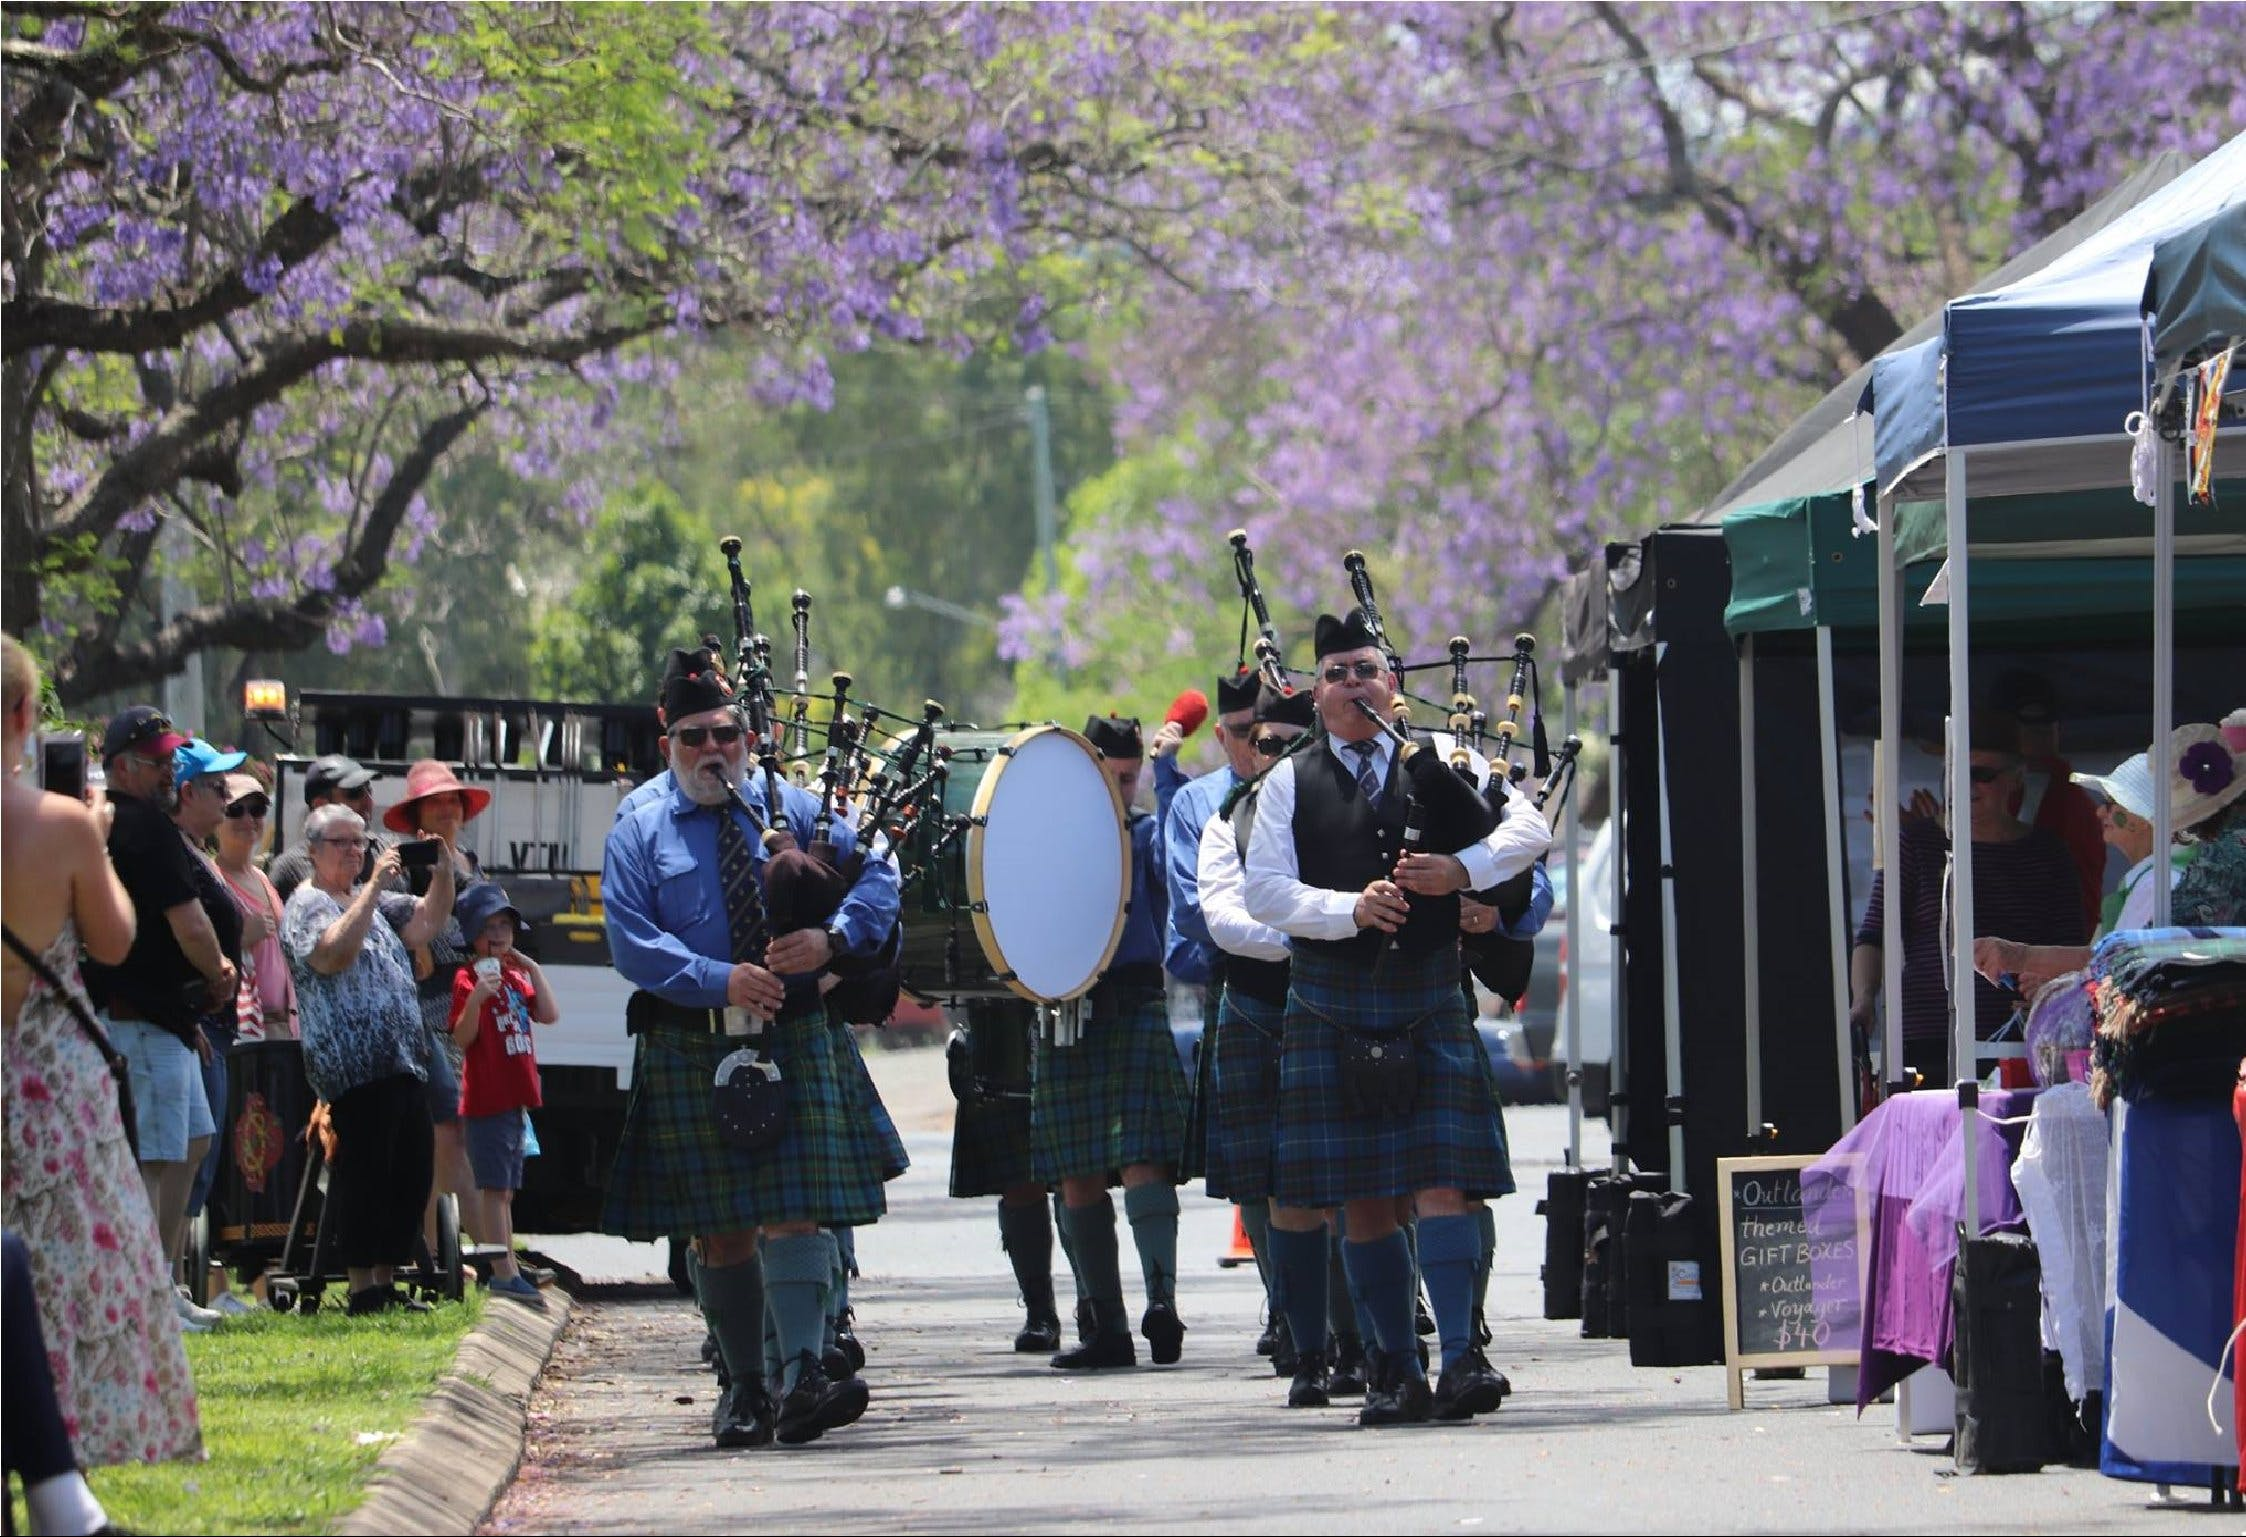 Celtic Festival of Queensland - New South Wales Tourism